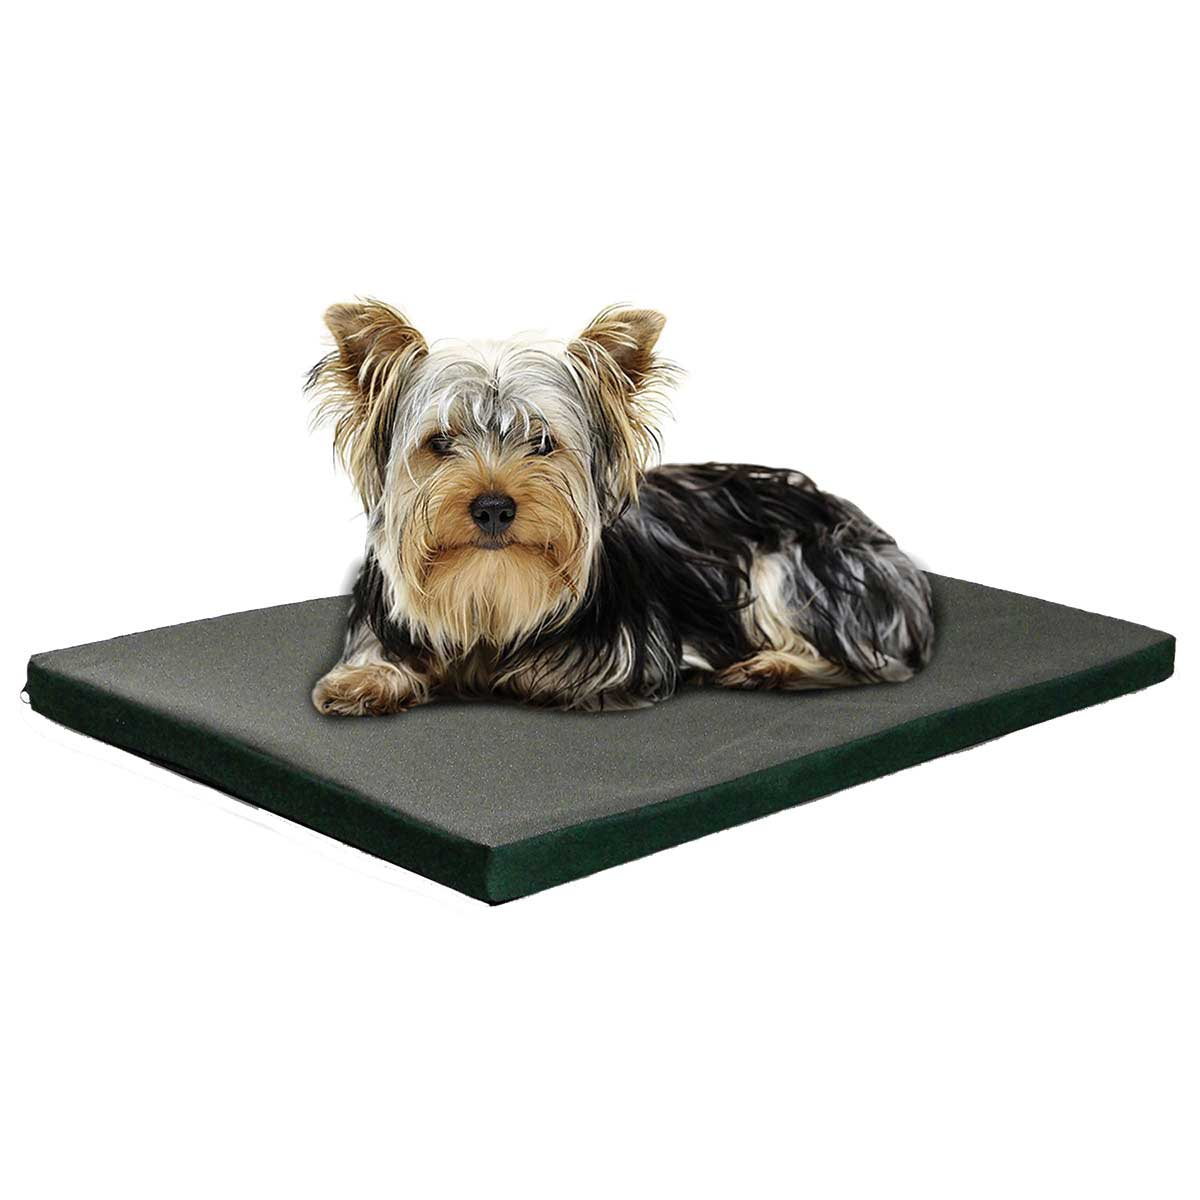 Dog on FurHaven Nap Kennel Pad - 19 inches by 12 inches